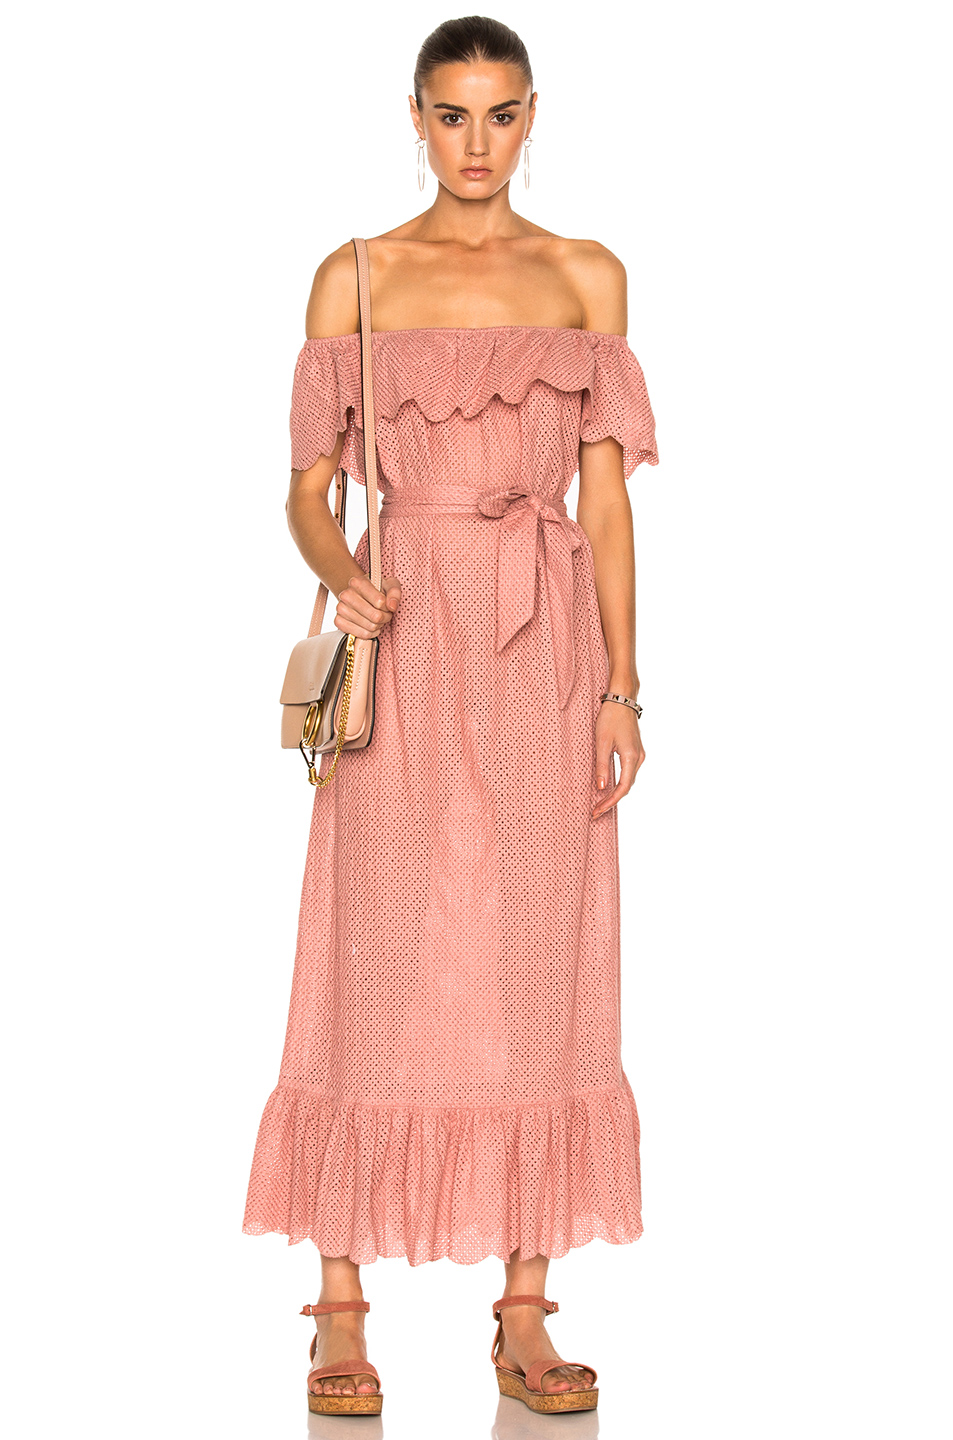 Marysia Swim Off Shoulder Dress in Pink